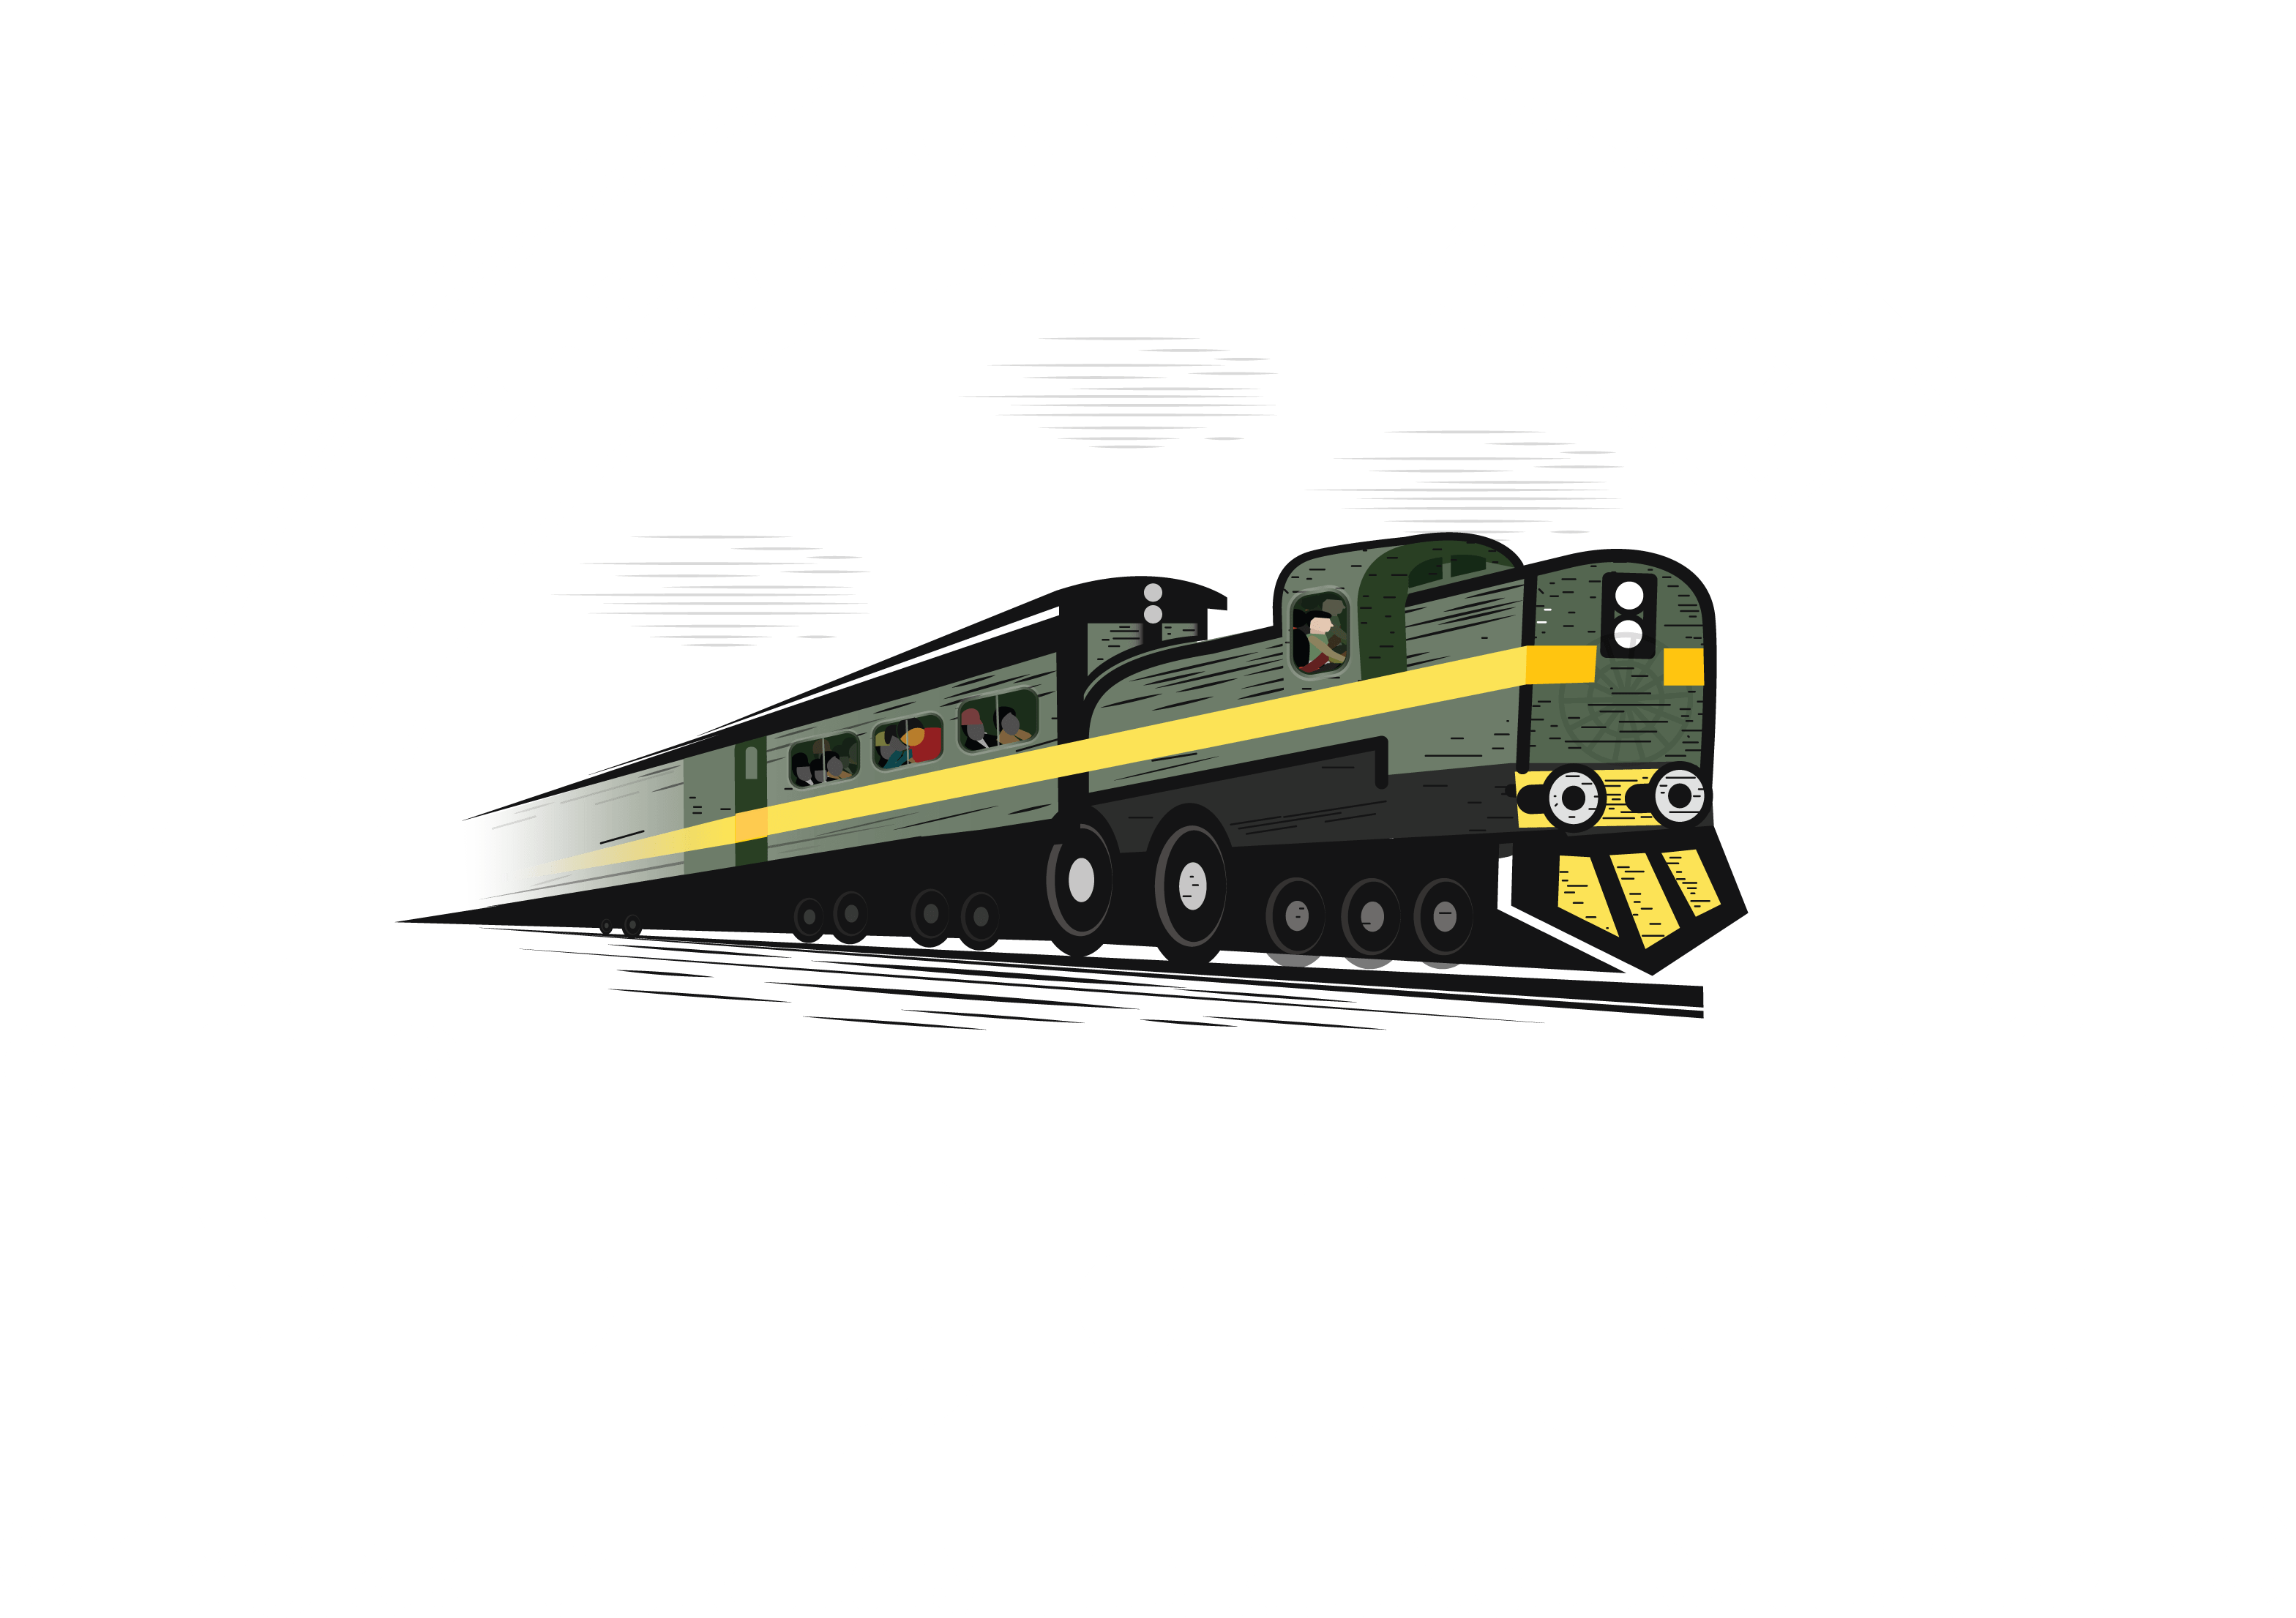 Day Out With Thomas™ – York-Durham Heritage Railway